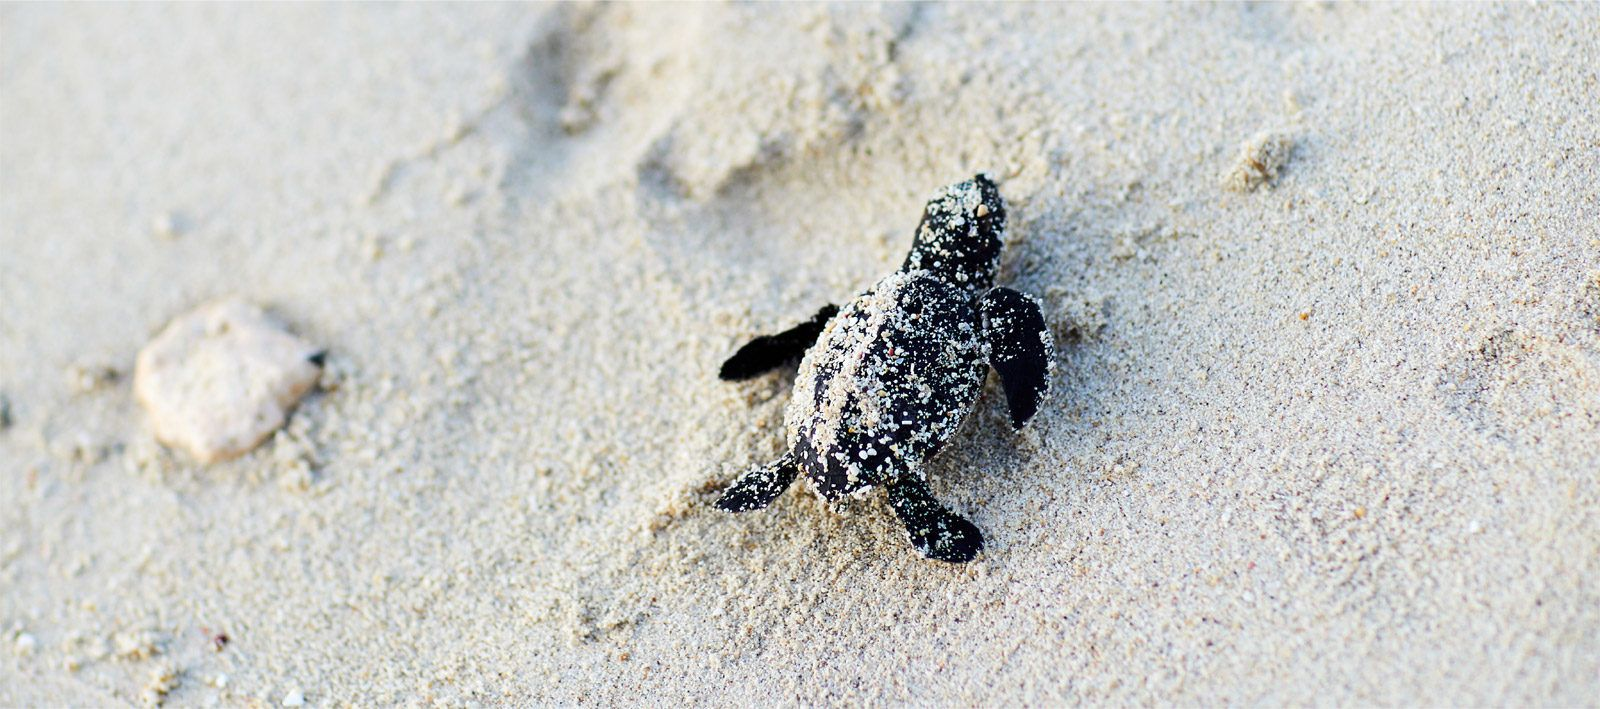 Saving the Sea Turtles